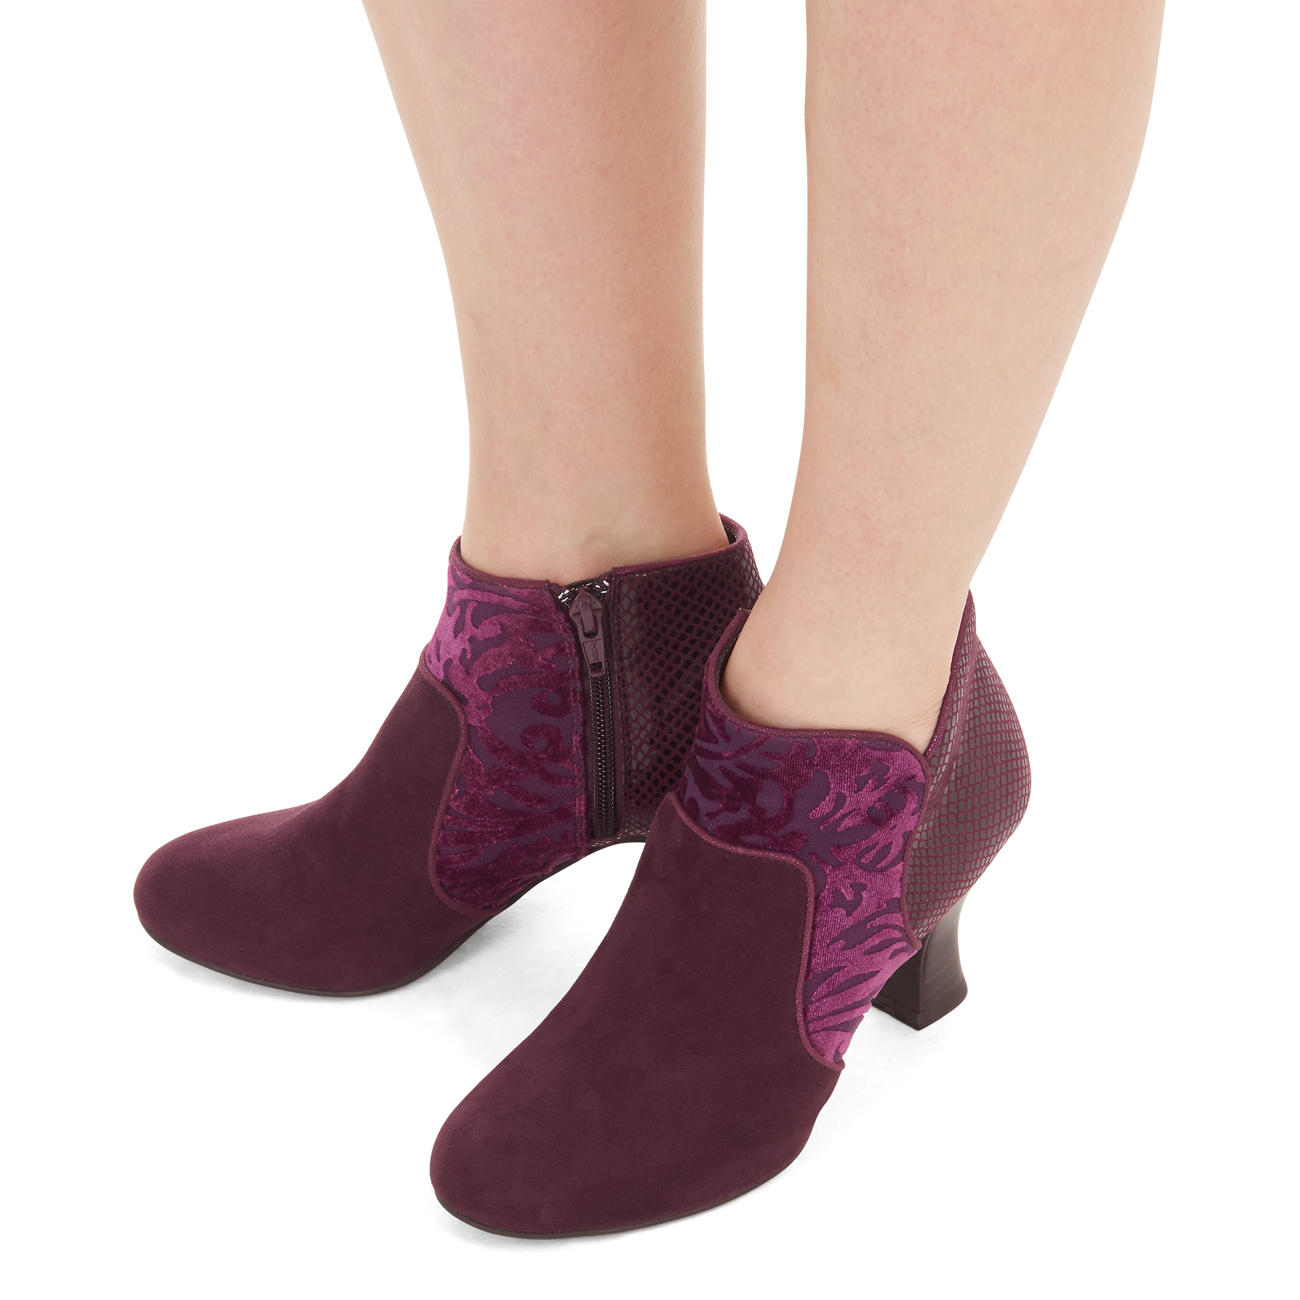 Ruby Shoo Kennedy Ankle Boots UK3-8 Burgundy Black Faux Suede /& Pattern Panel